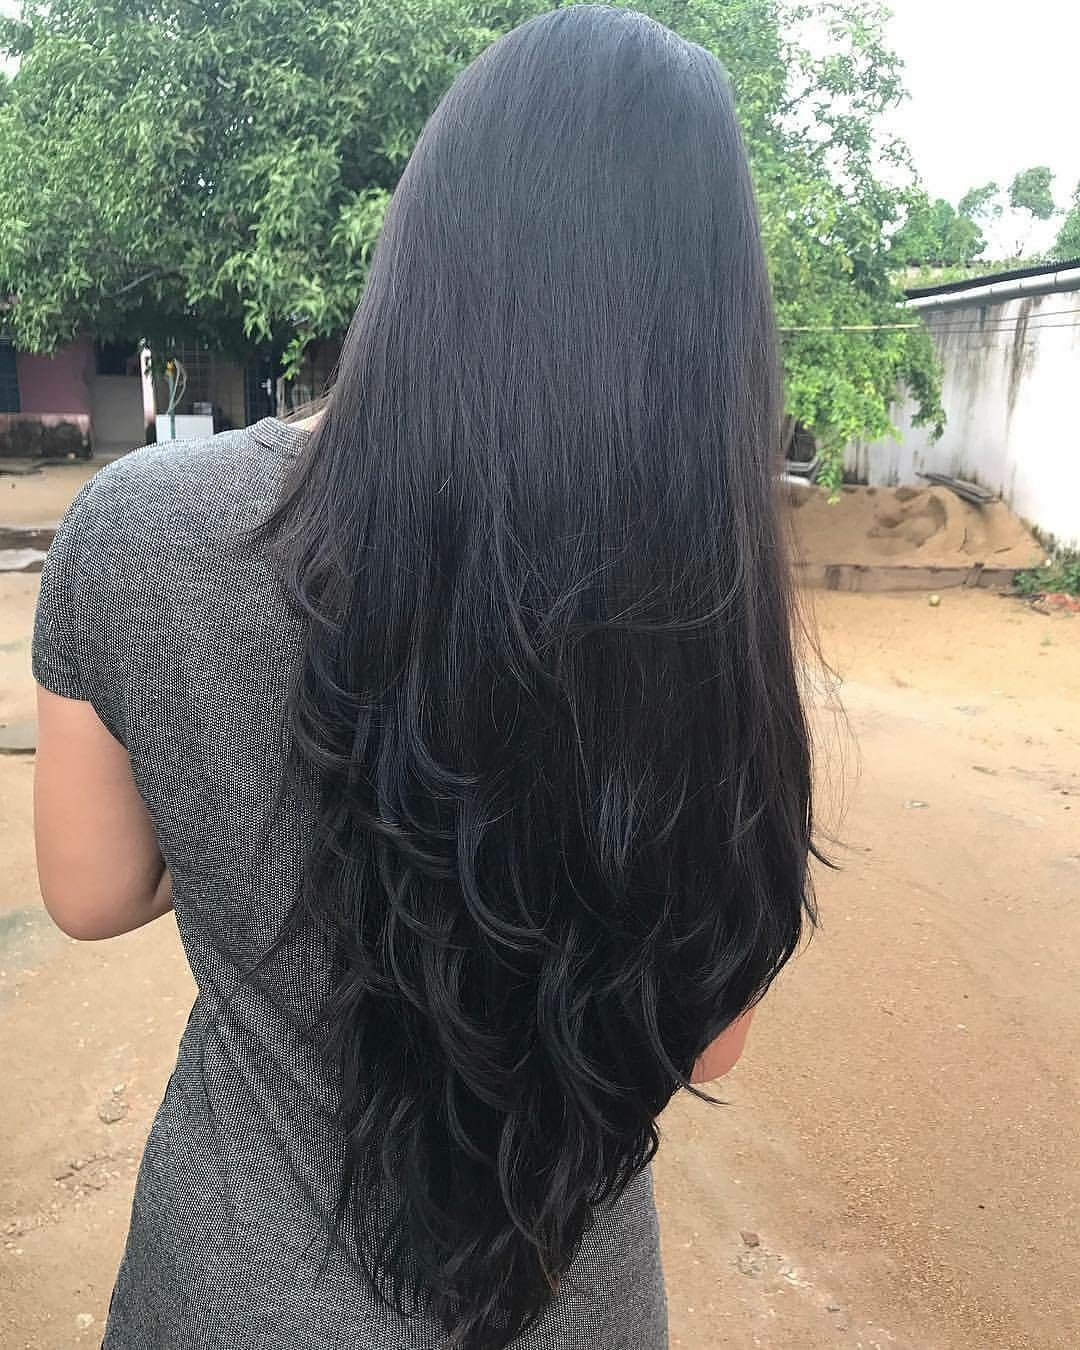 holy hell! so beautiful | h a i r in 2019 | pinterest hair